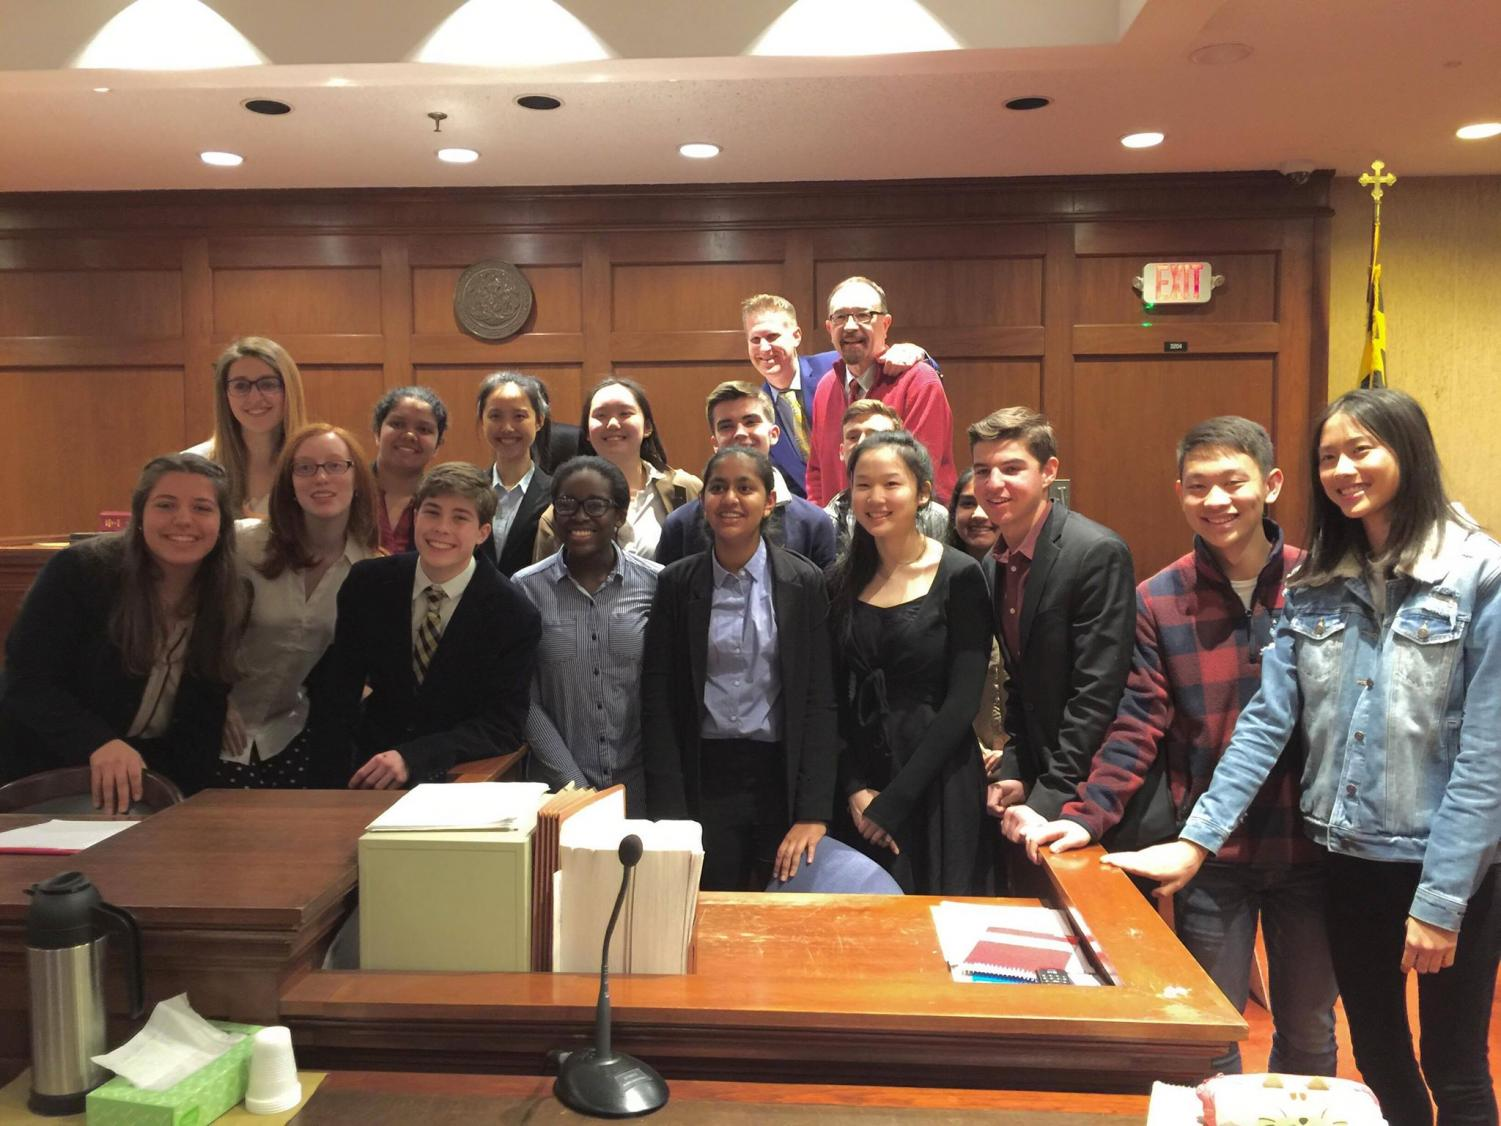 Members of the mock trial team gather in the court house.